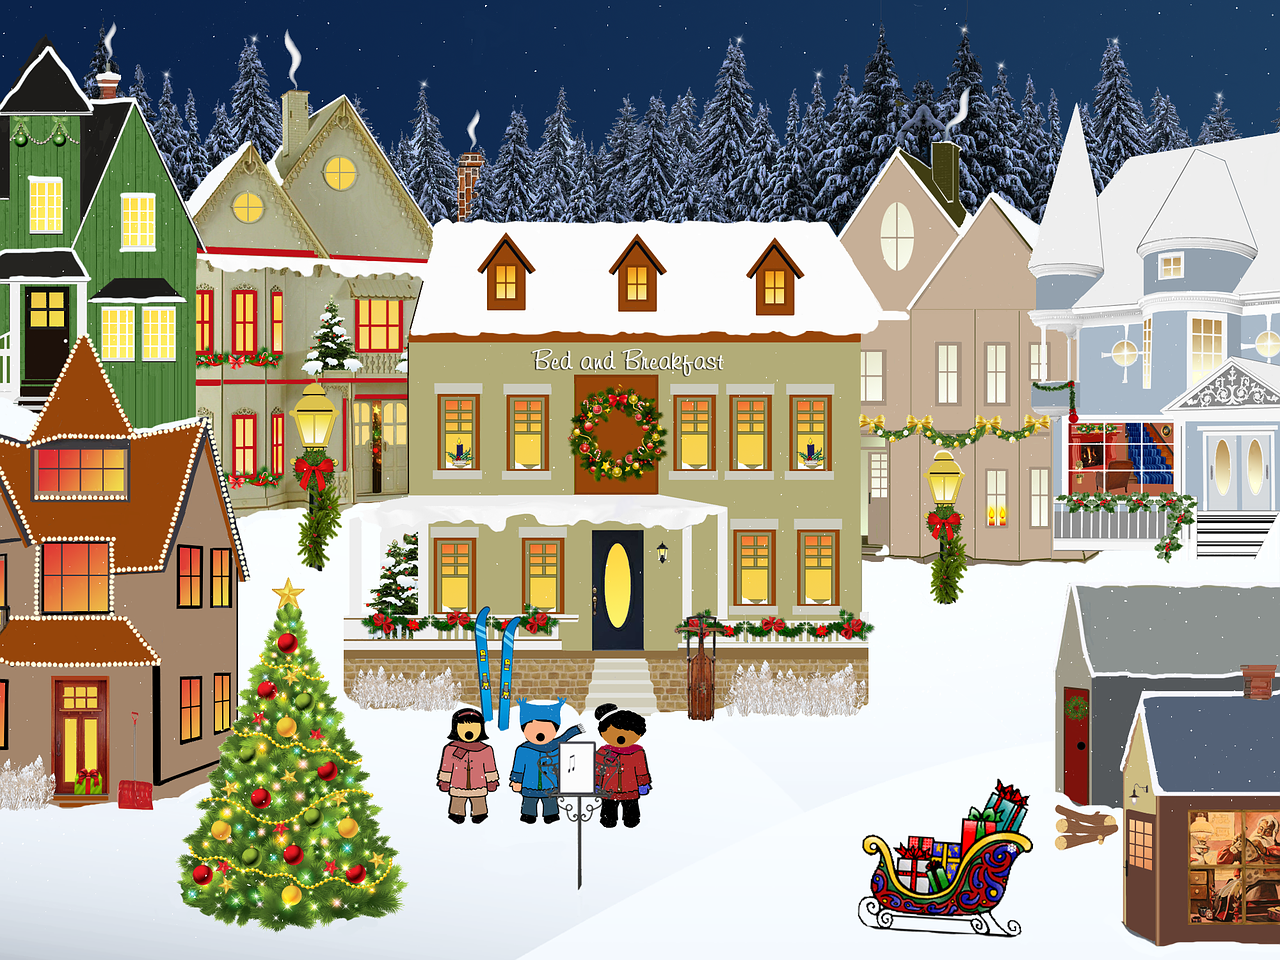 Dickens Christmas Village - Start with a Set, Collect Pieces